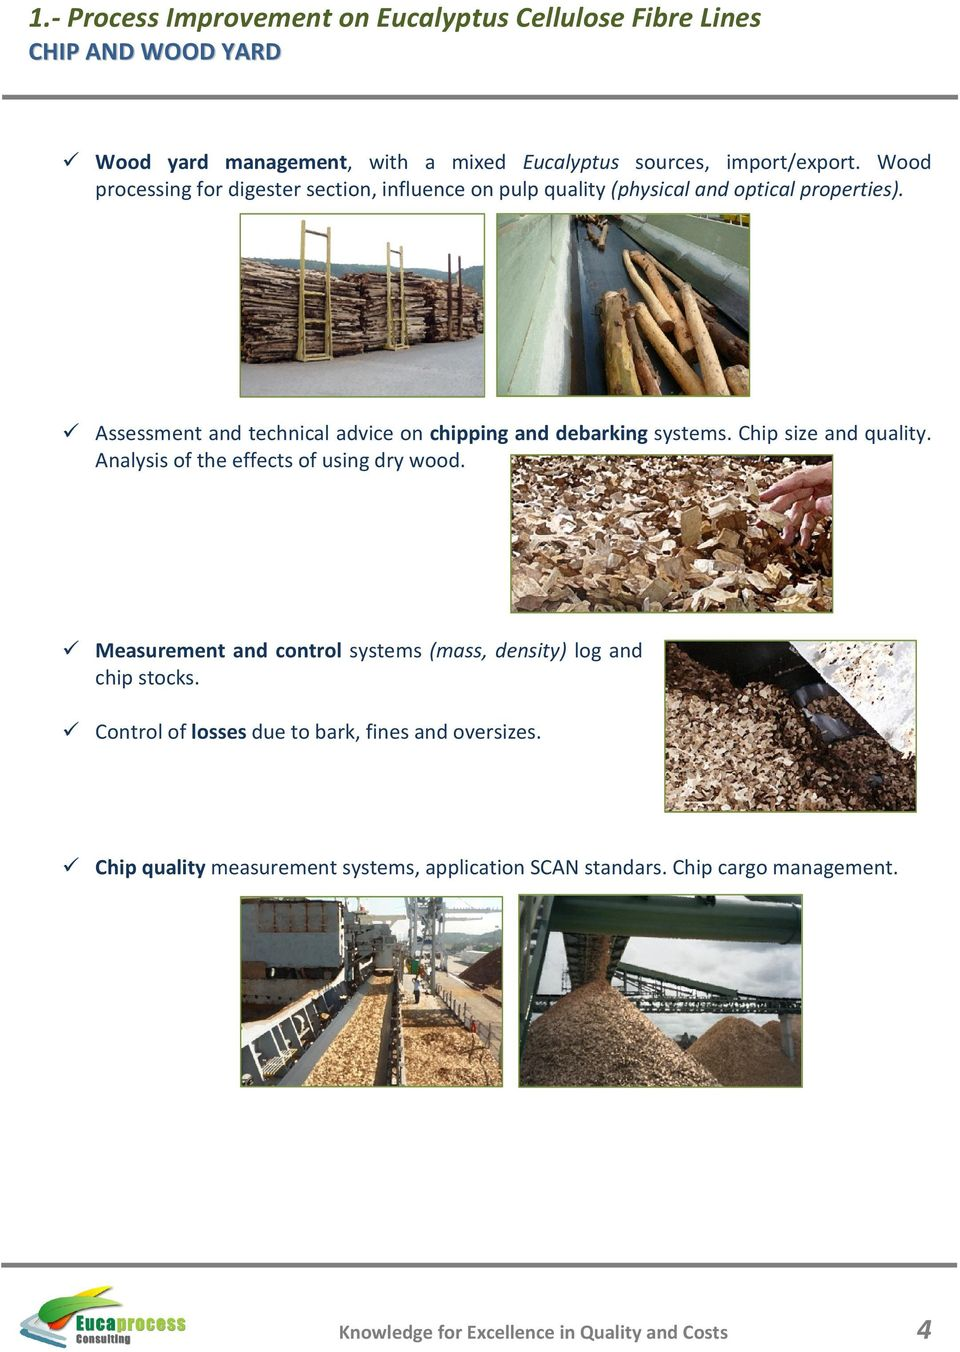 Assessment and technical advice on chipping and debarking systems. Chip size and quality. Analysis of the effects of using dry wood.